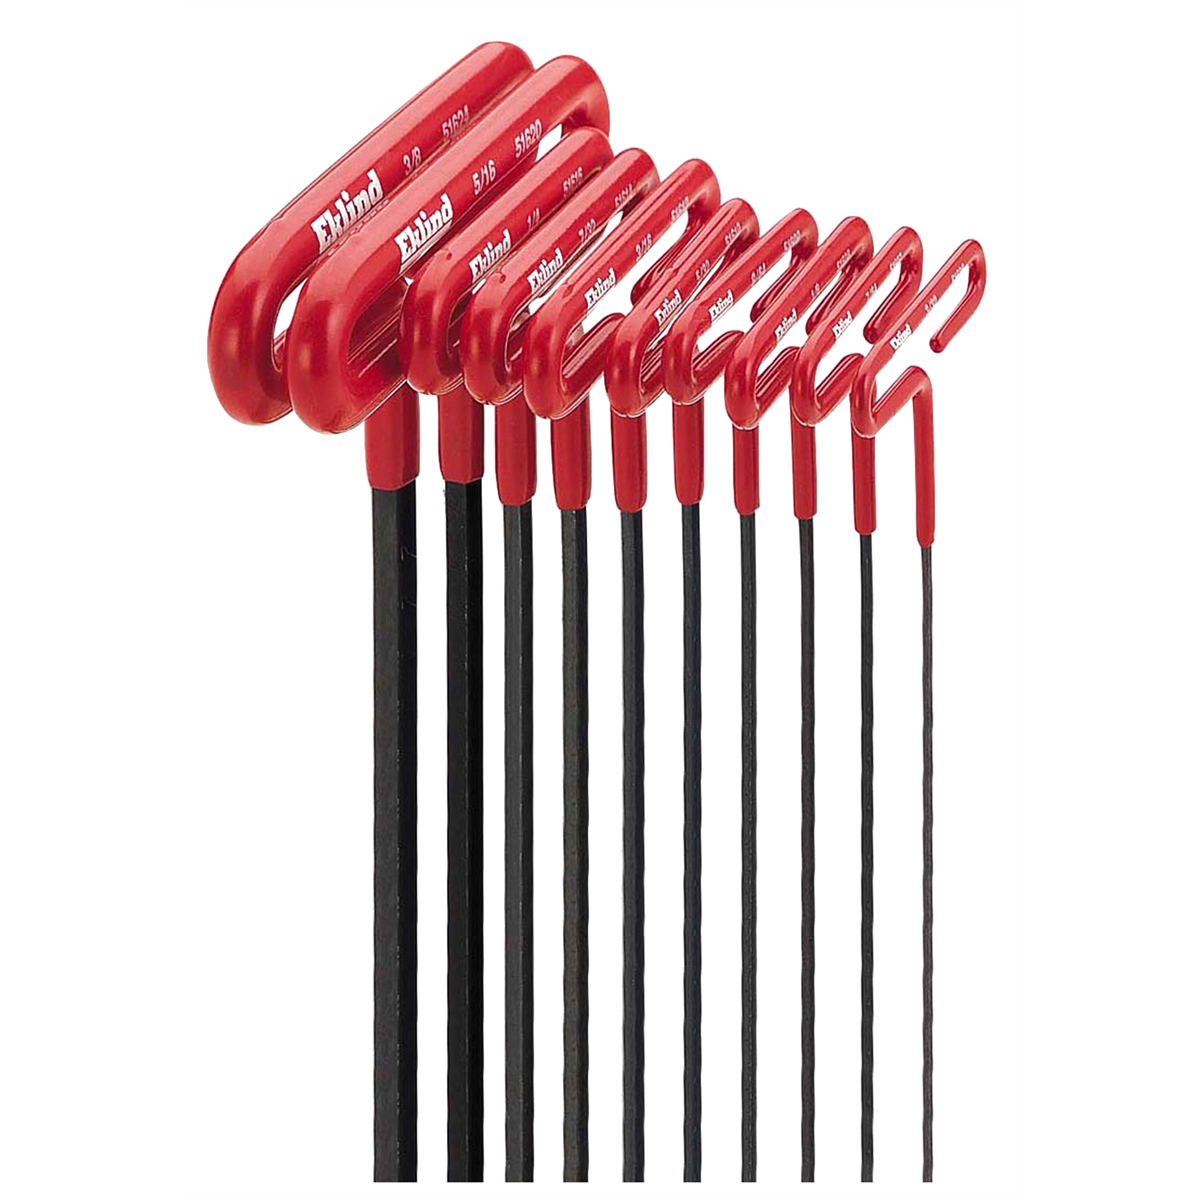 "Eklind 53610 10-Piece Standard T-Handle Hex Key Set 3/32"" to 3/8"", 6-Inch, Cushion Grip"